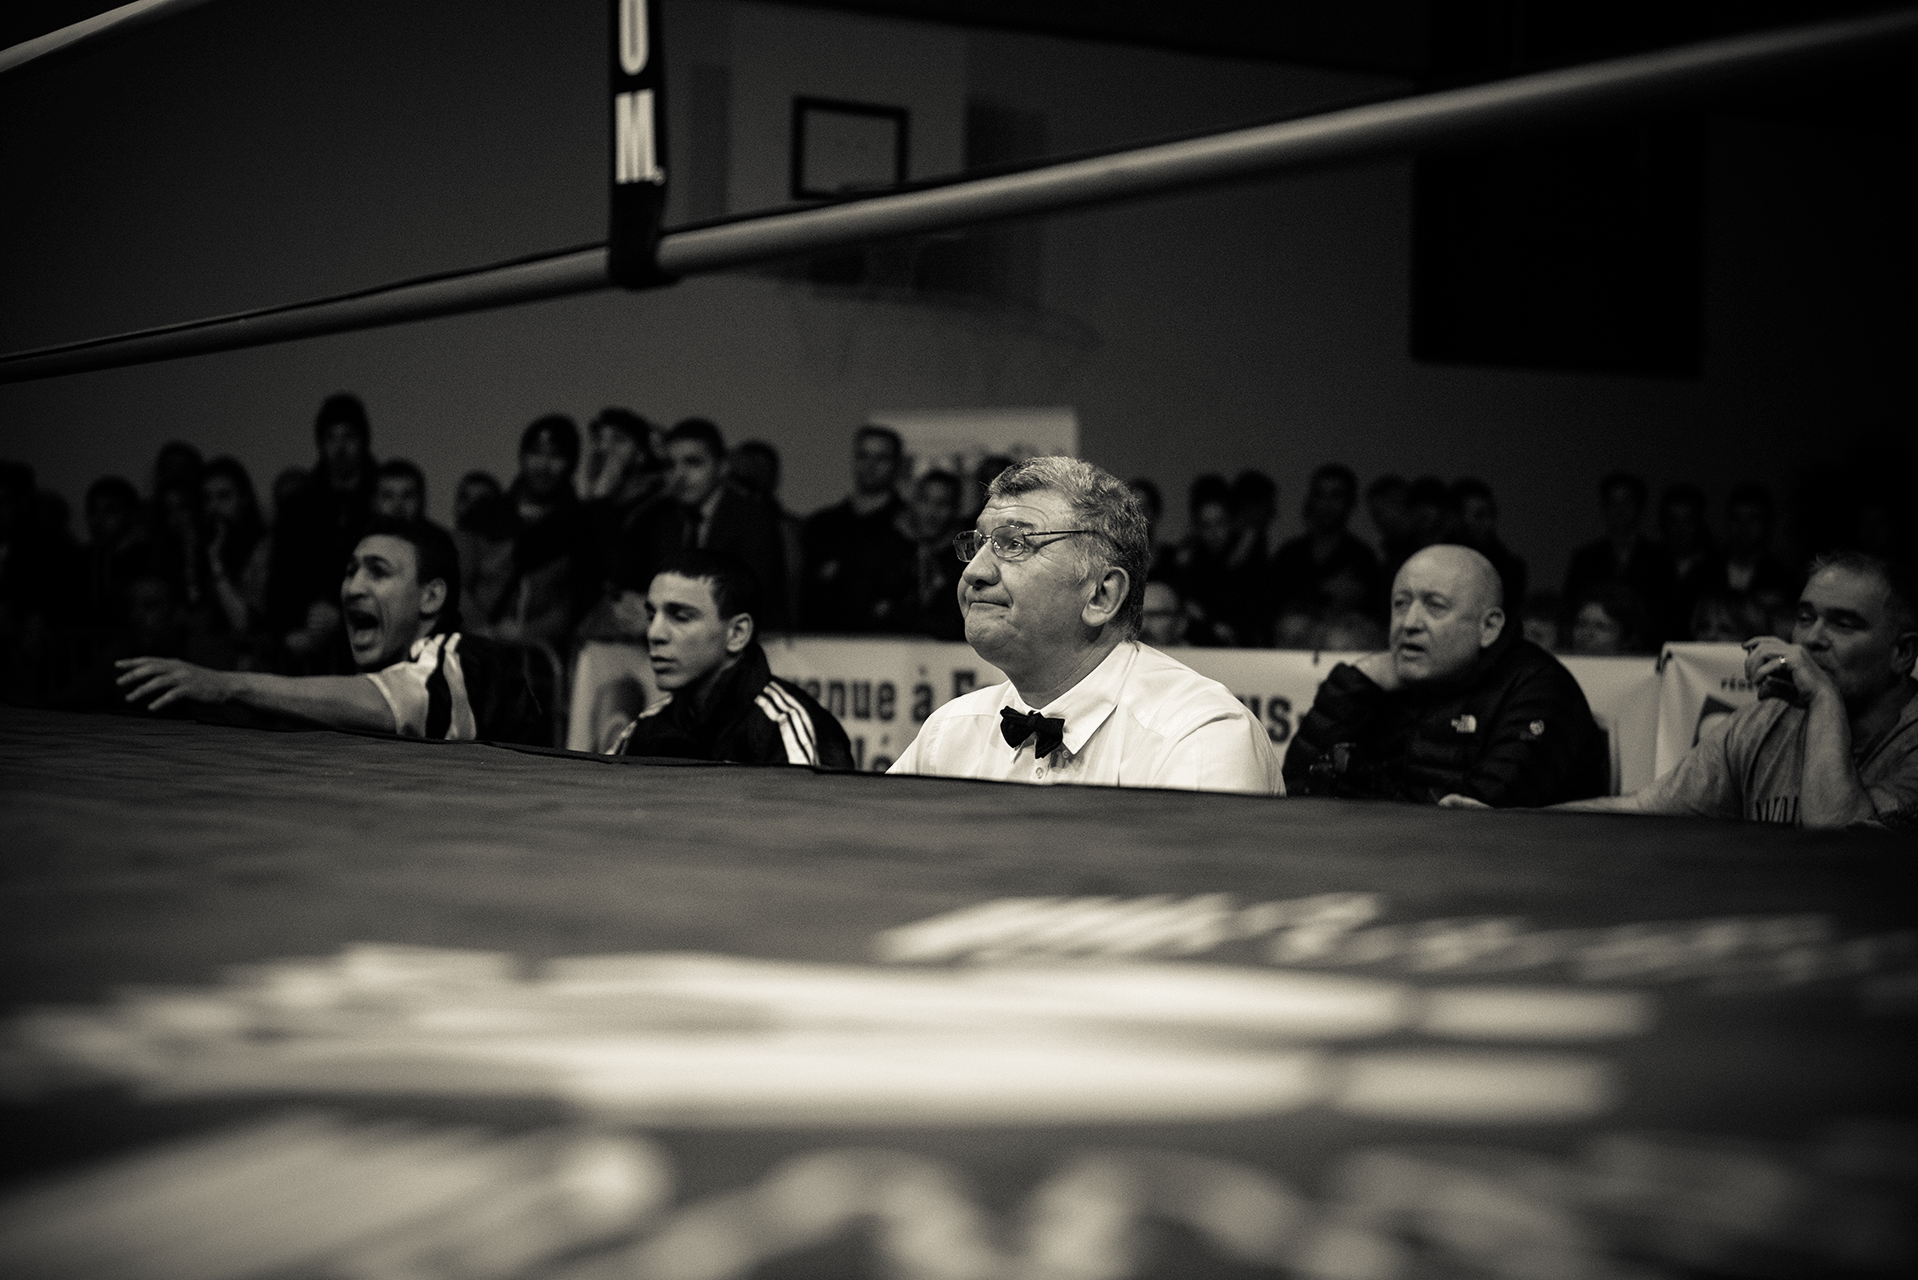 maya-angelsen-reportage-photo-boxe-ile-de-france